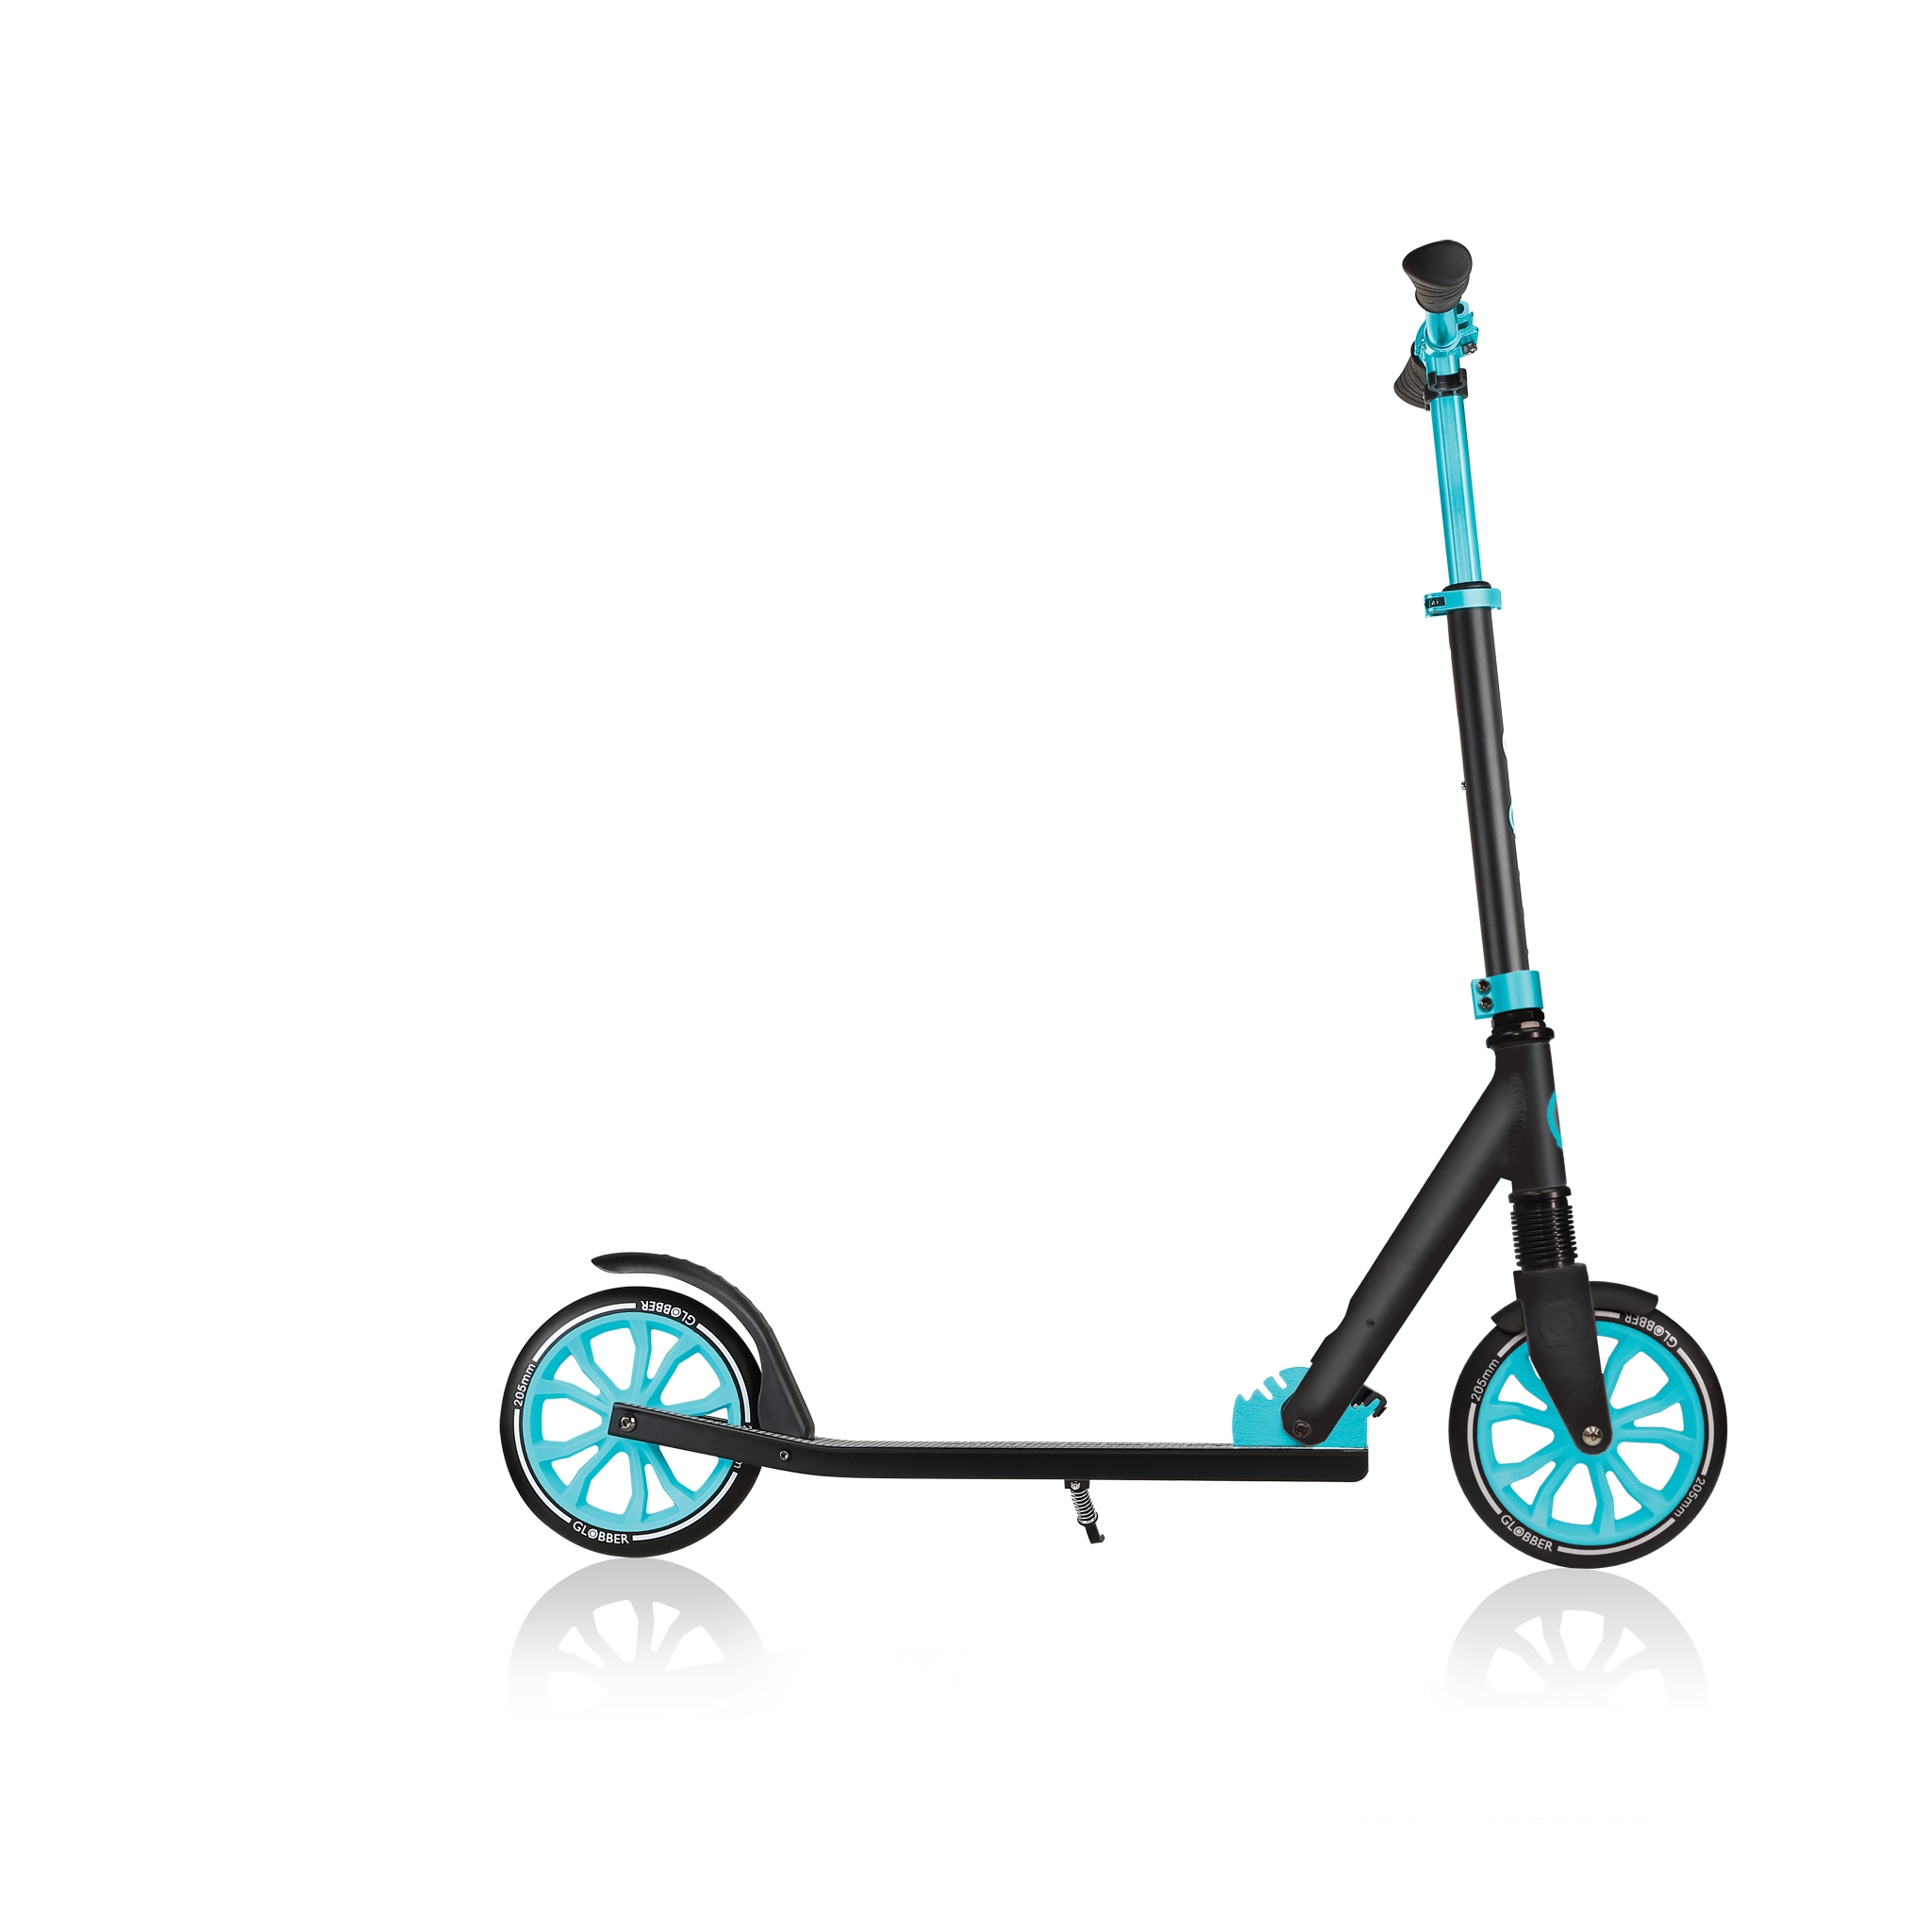 Globber-NL-205-collapsible-2-wheel-scooter-for-kids-with-big-wheels-205mm 3